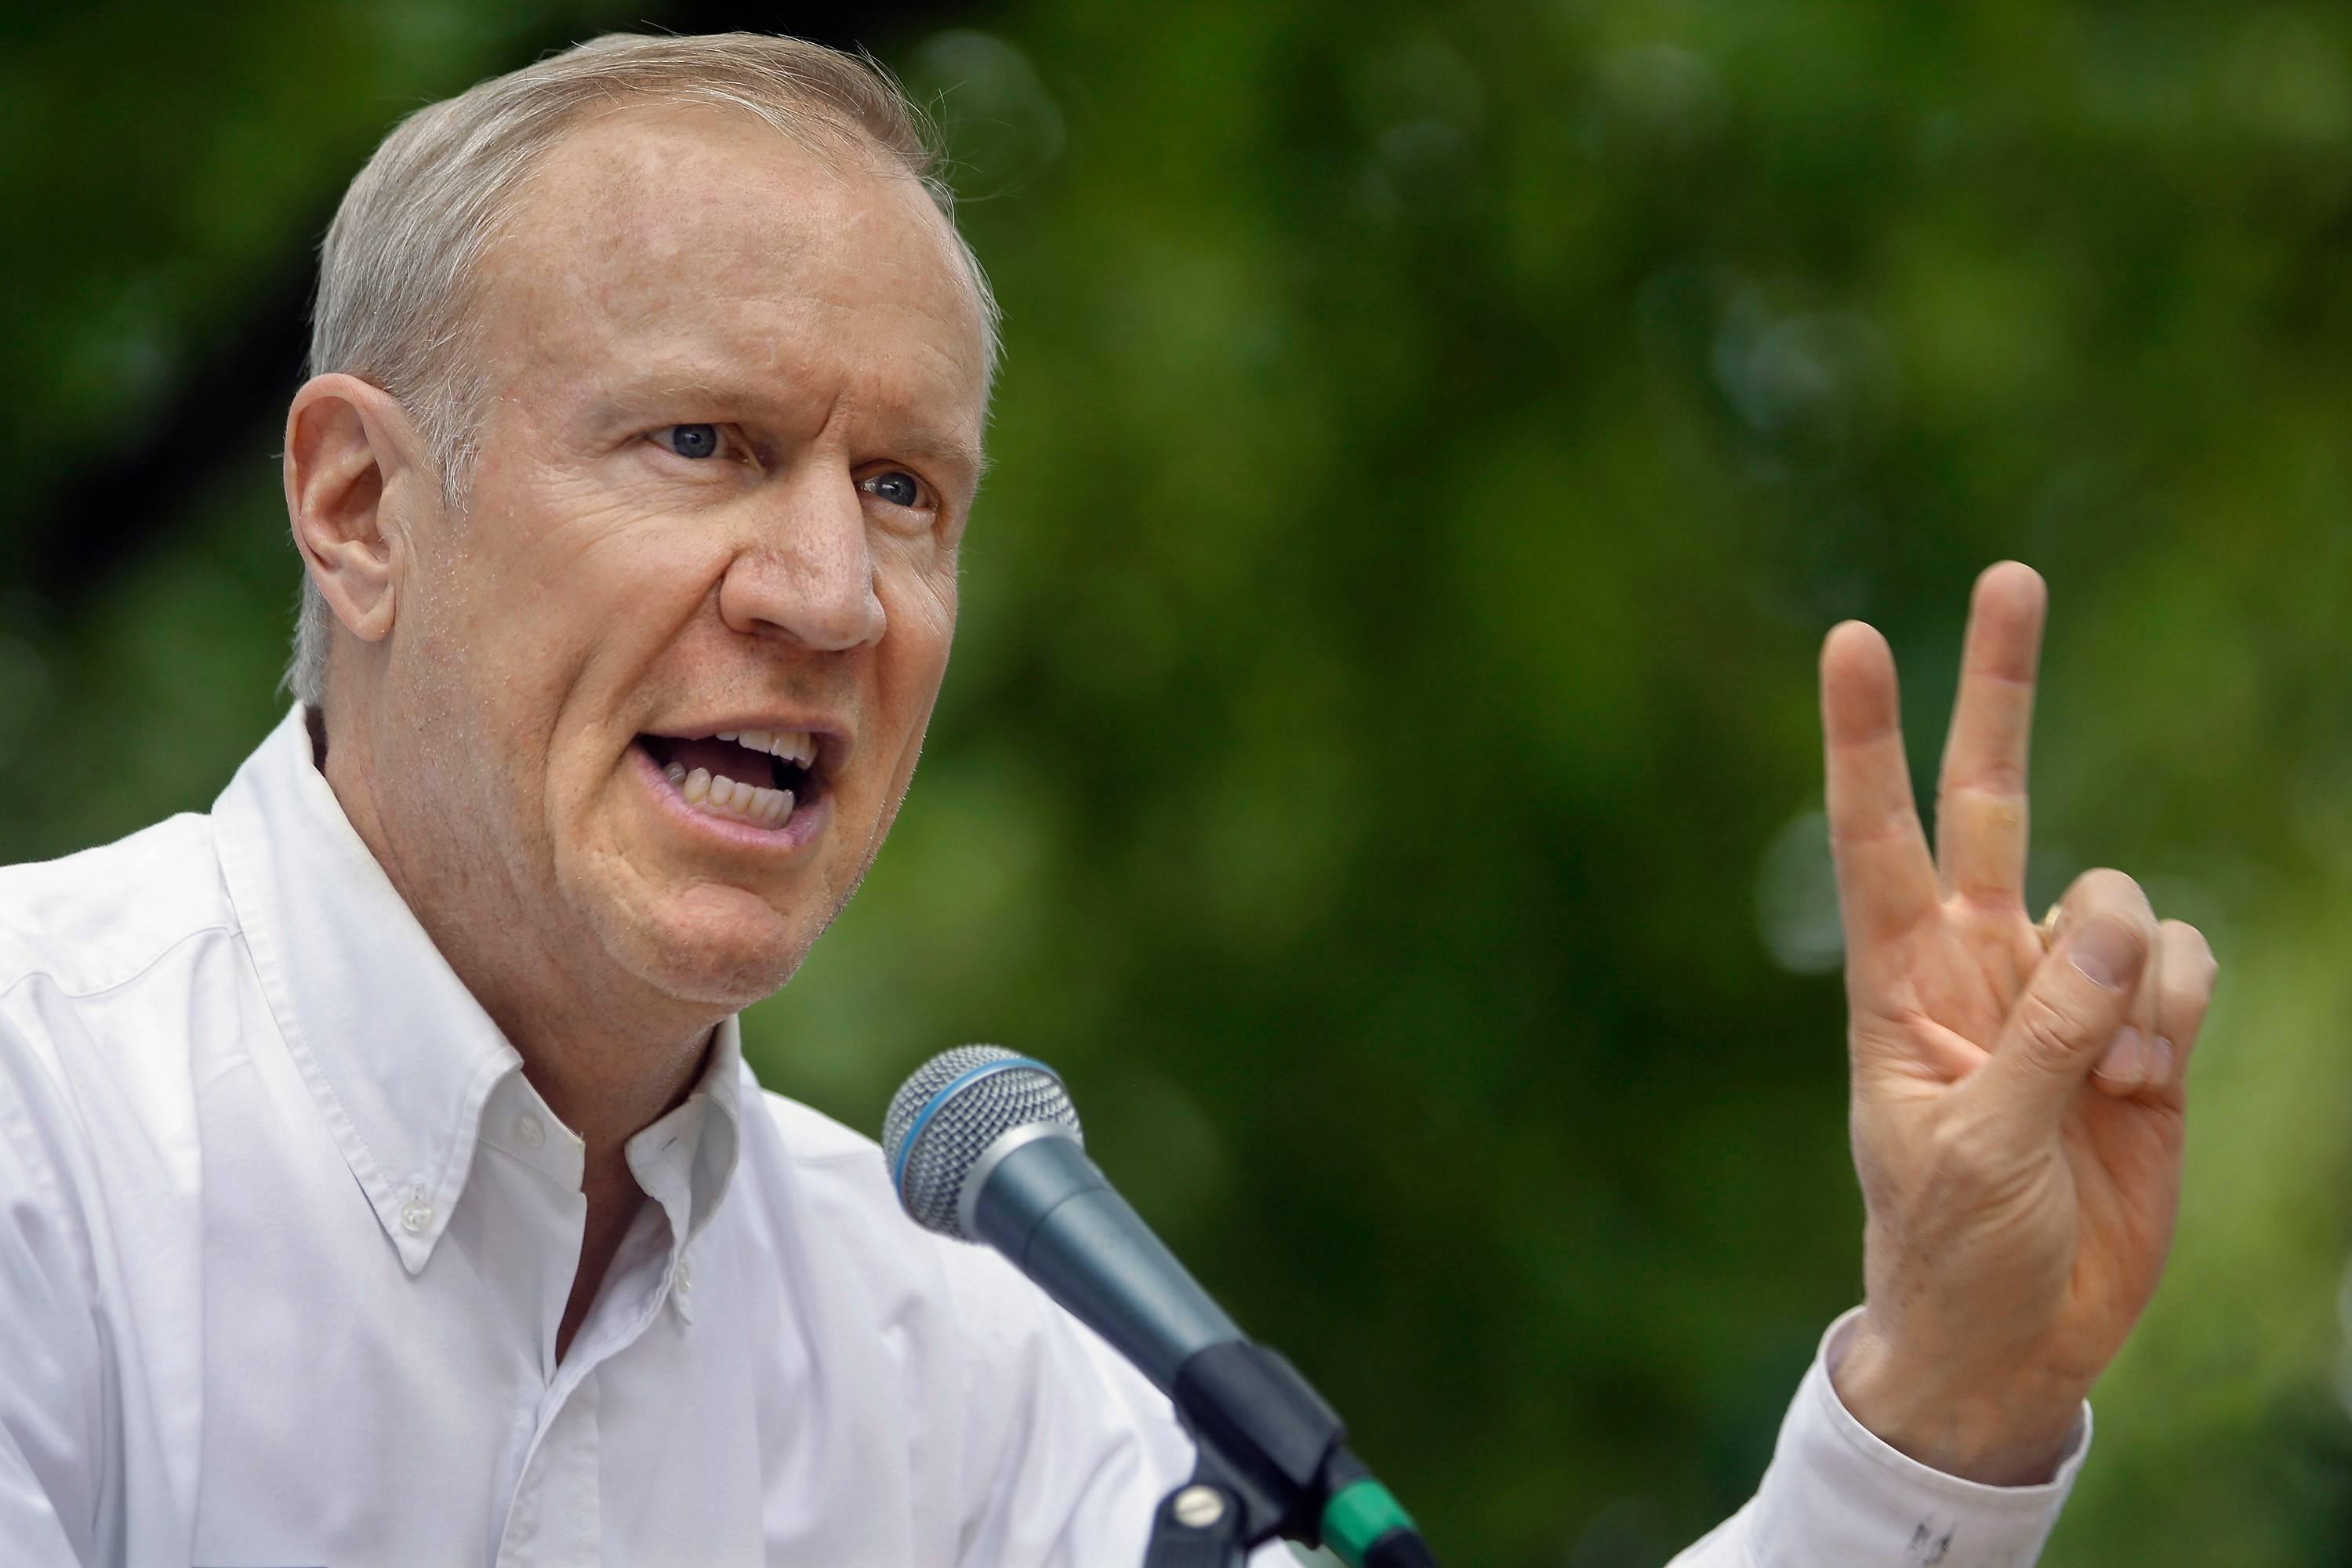 Rauner: Voters should decide on future property tax hikes